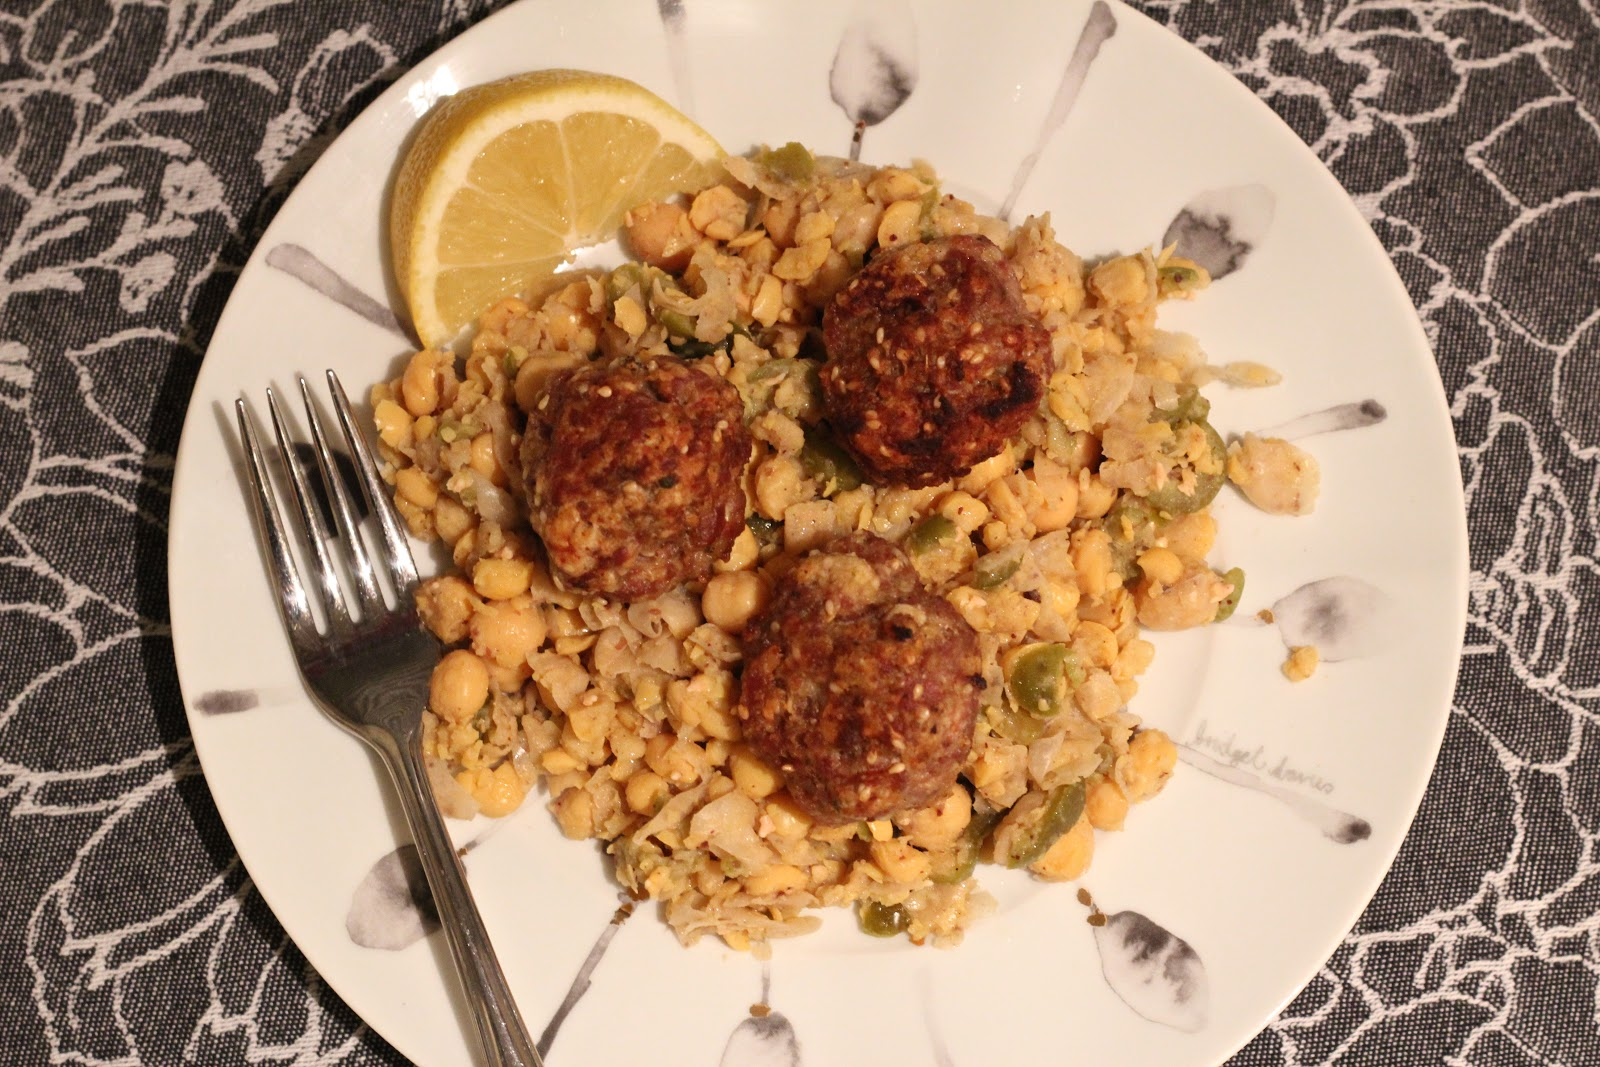 The Kitchen Holiday Sesame Spiced Turkey Meatballs And Smashed